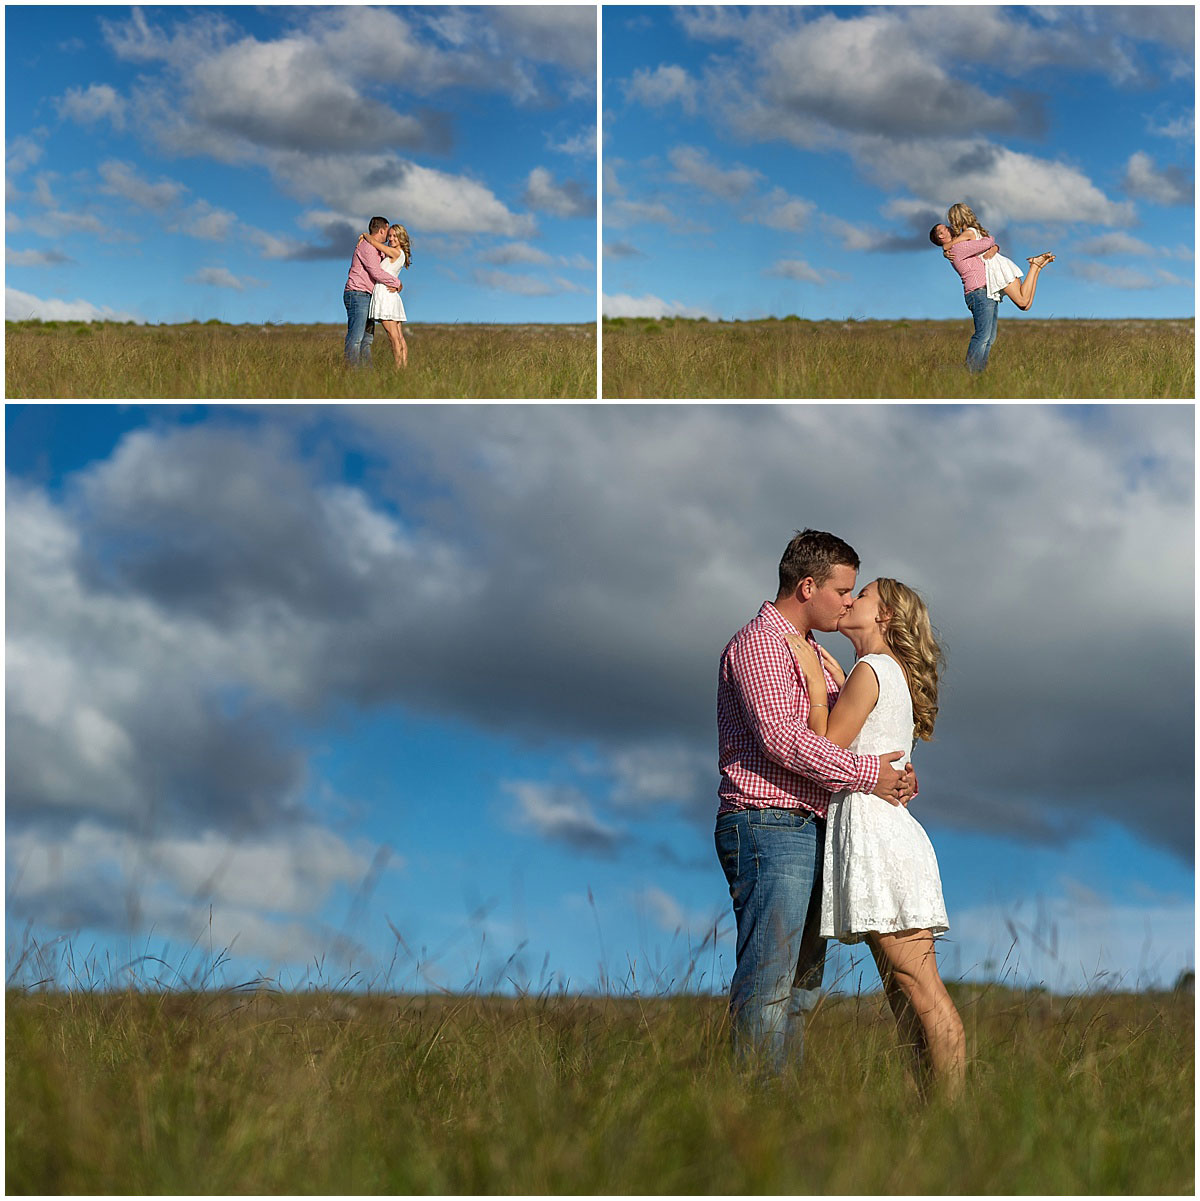 Kaapchehoop-Engagement-Photography-(4-of-6)